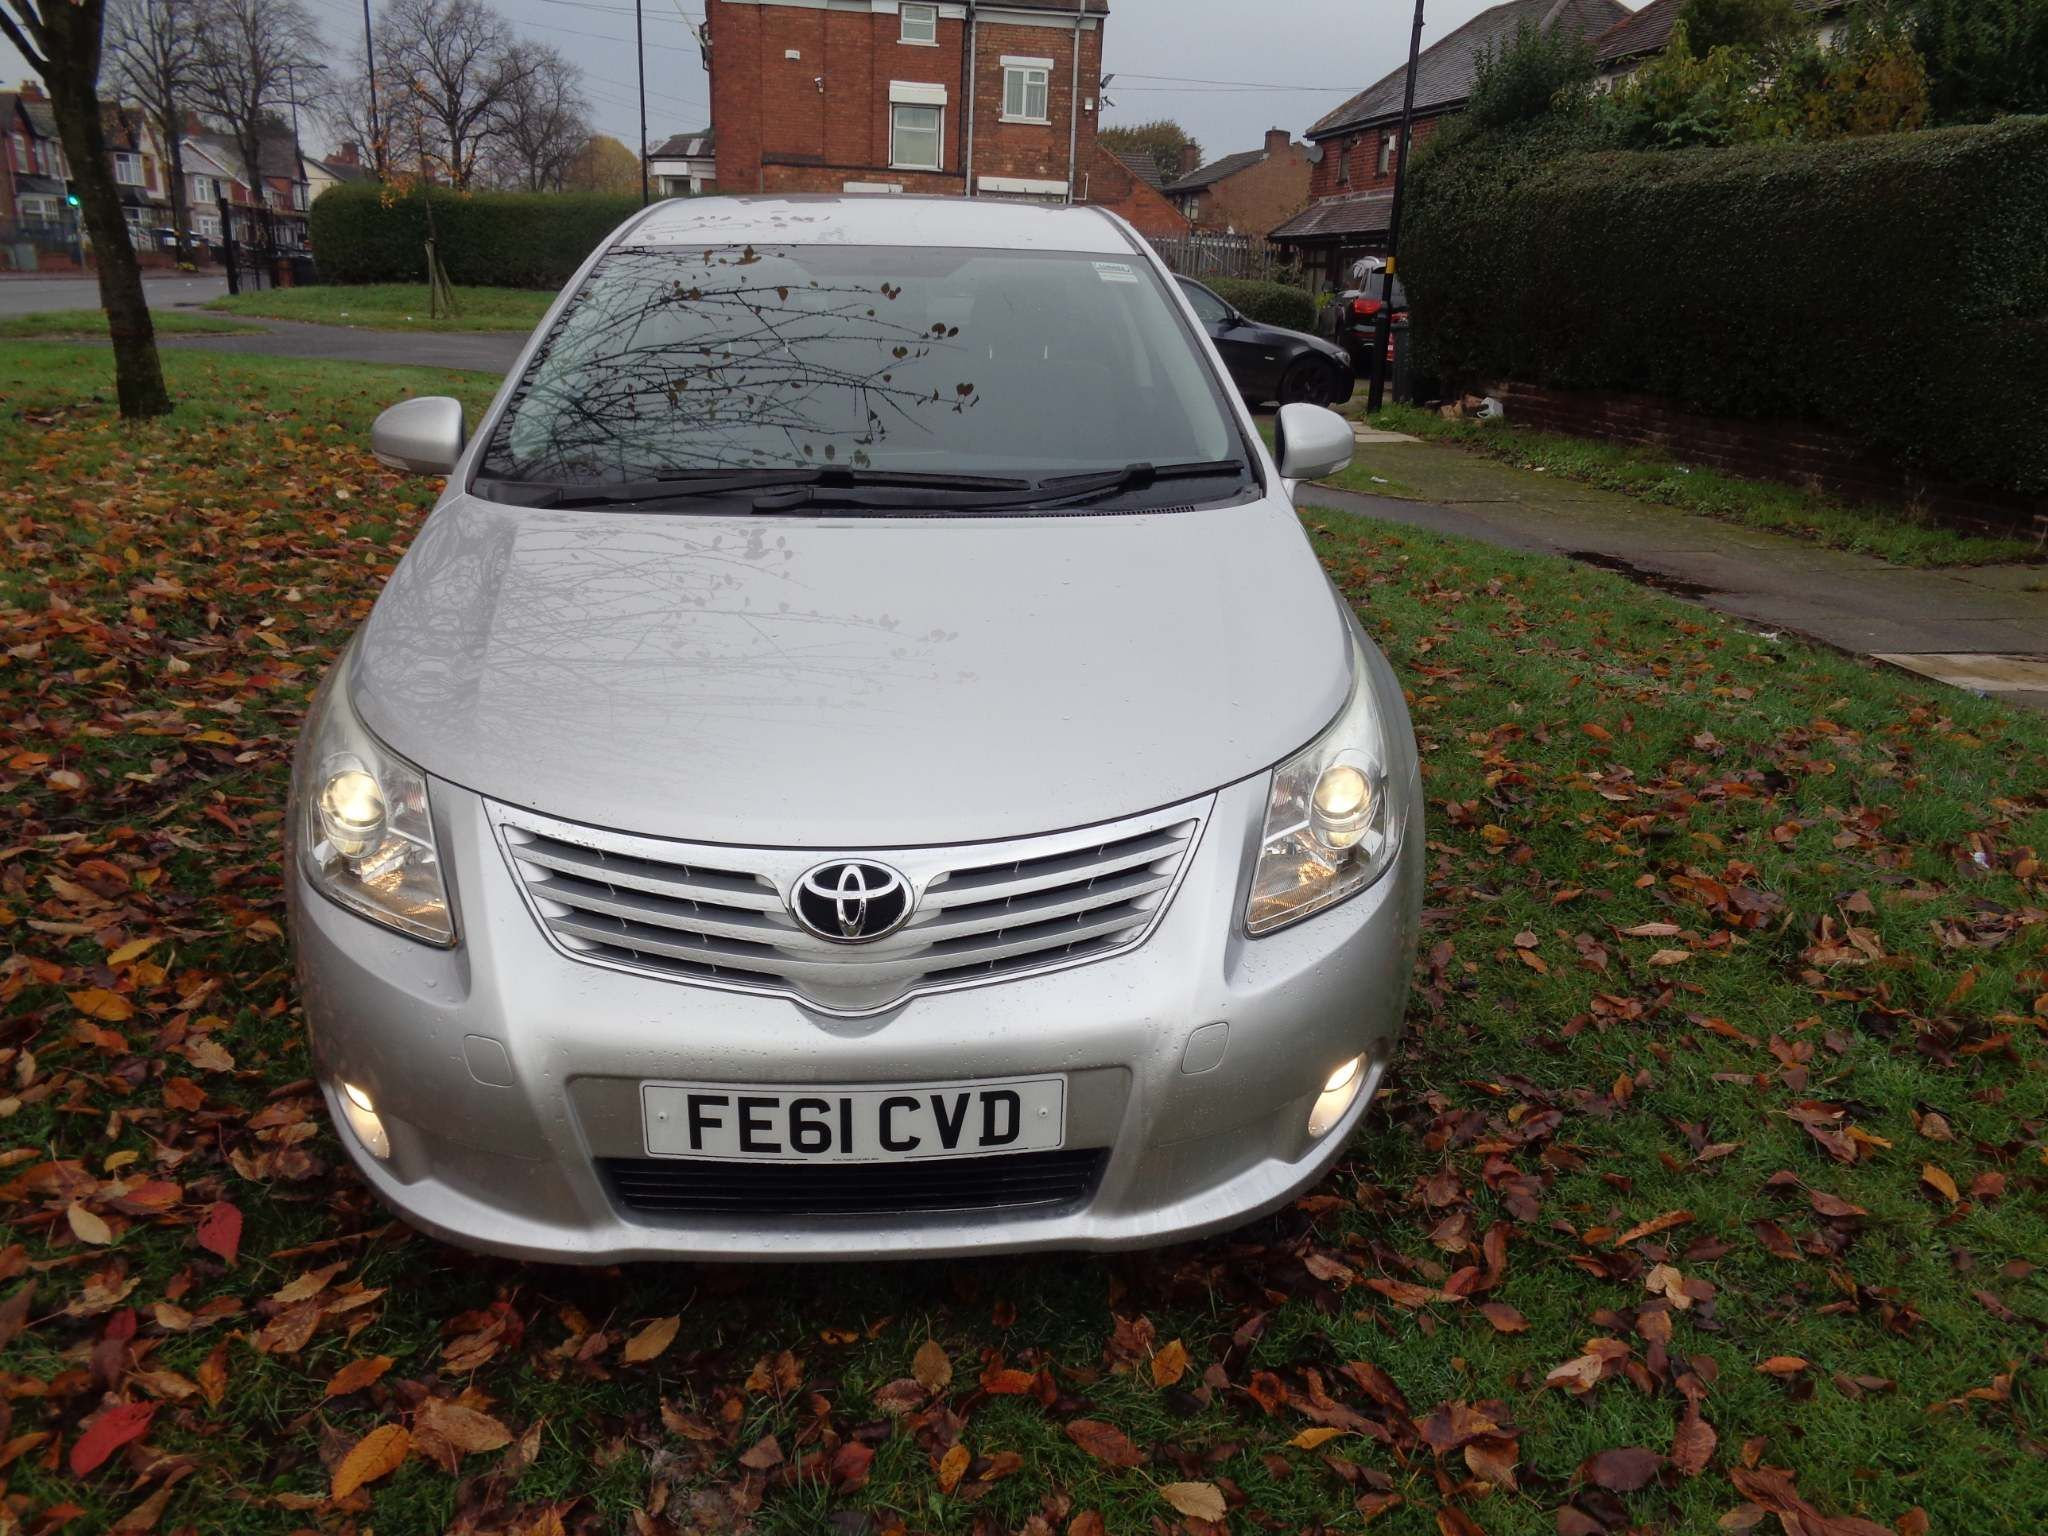 Toyota Avensis 1.8 TR 4dr